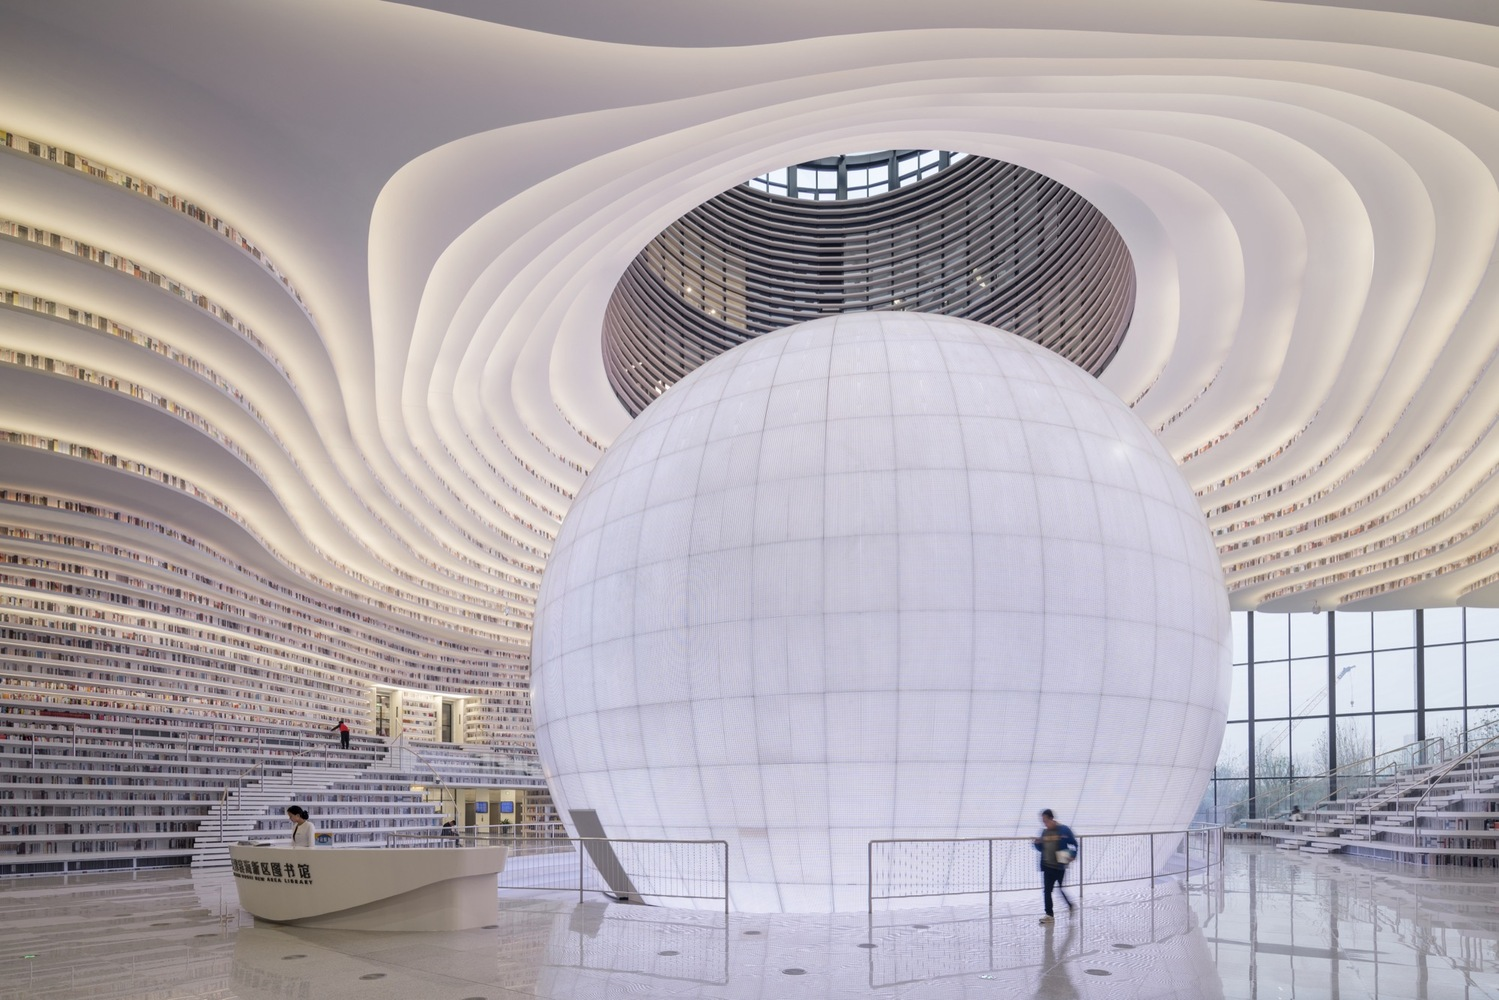 Step Inside This Amazing Space